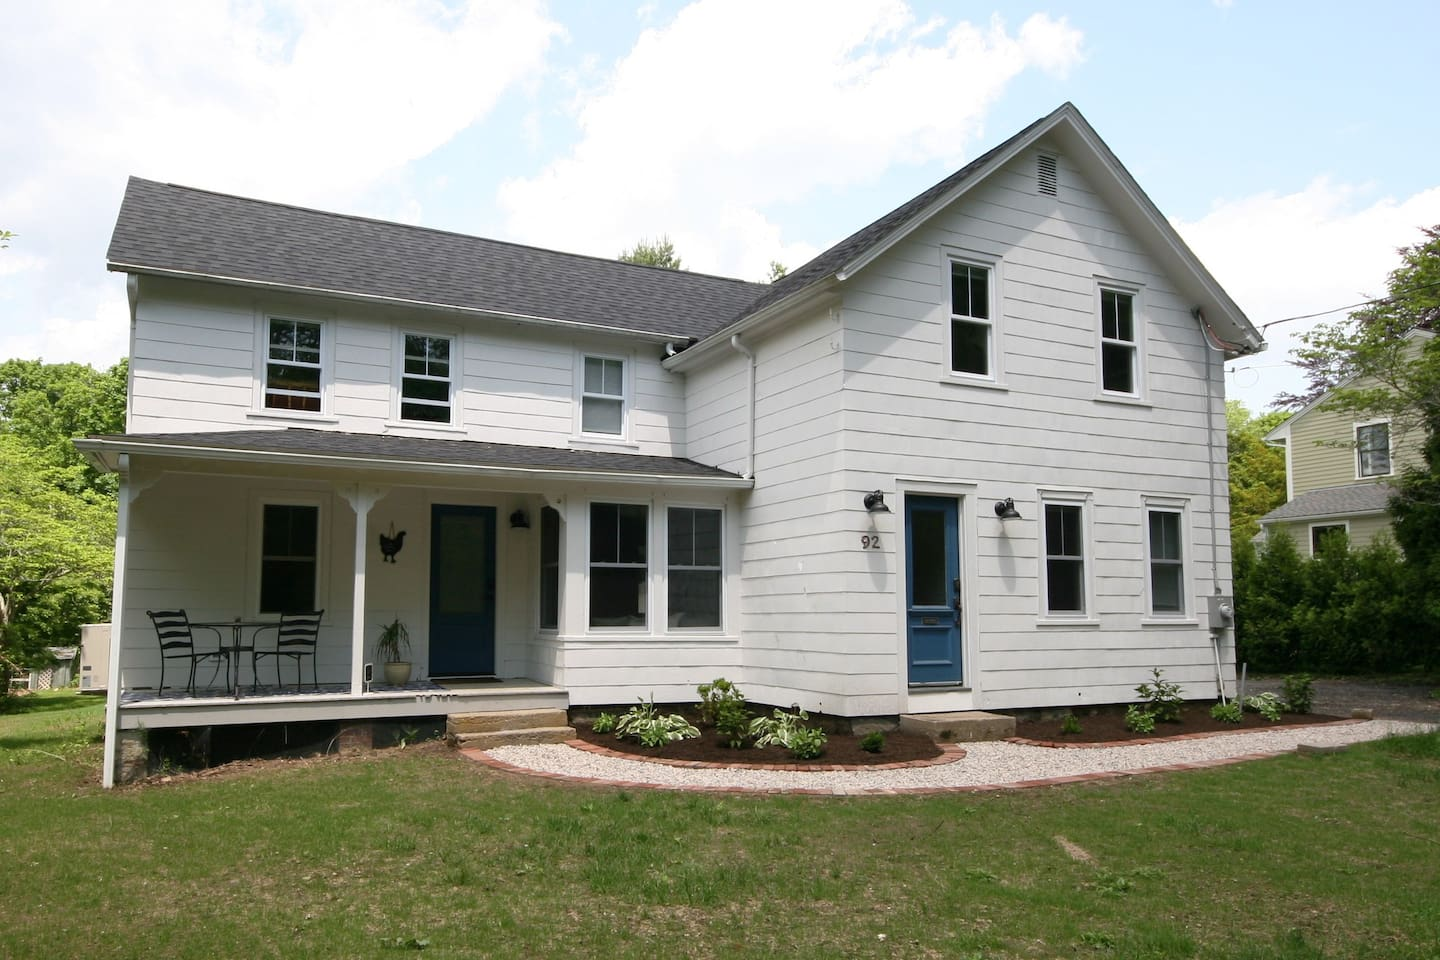 Front view of home. Entry to guest quarters is through covered front porch door